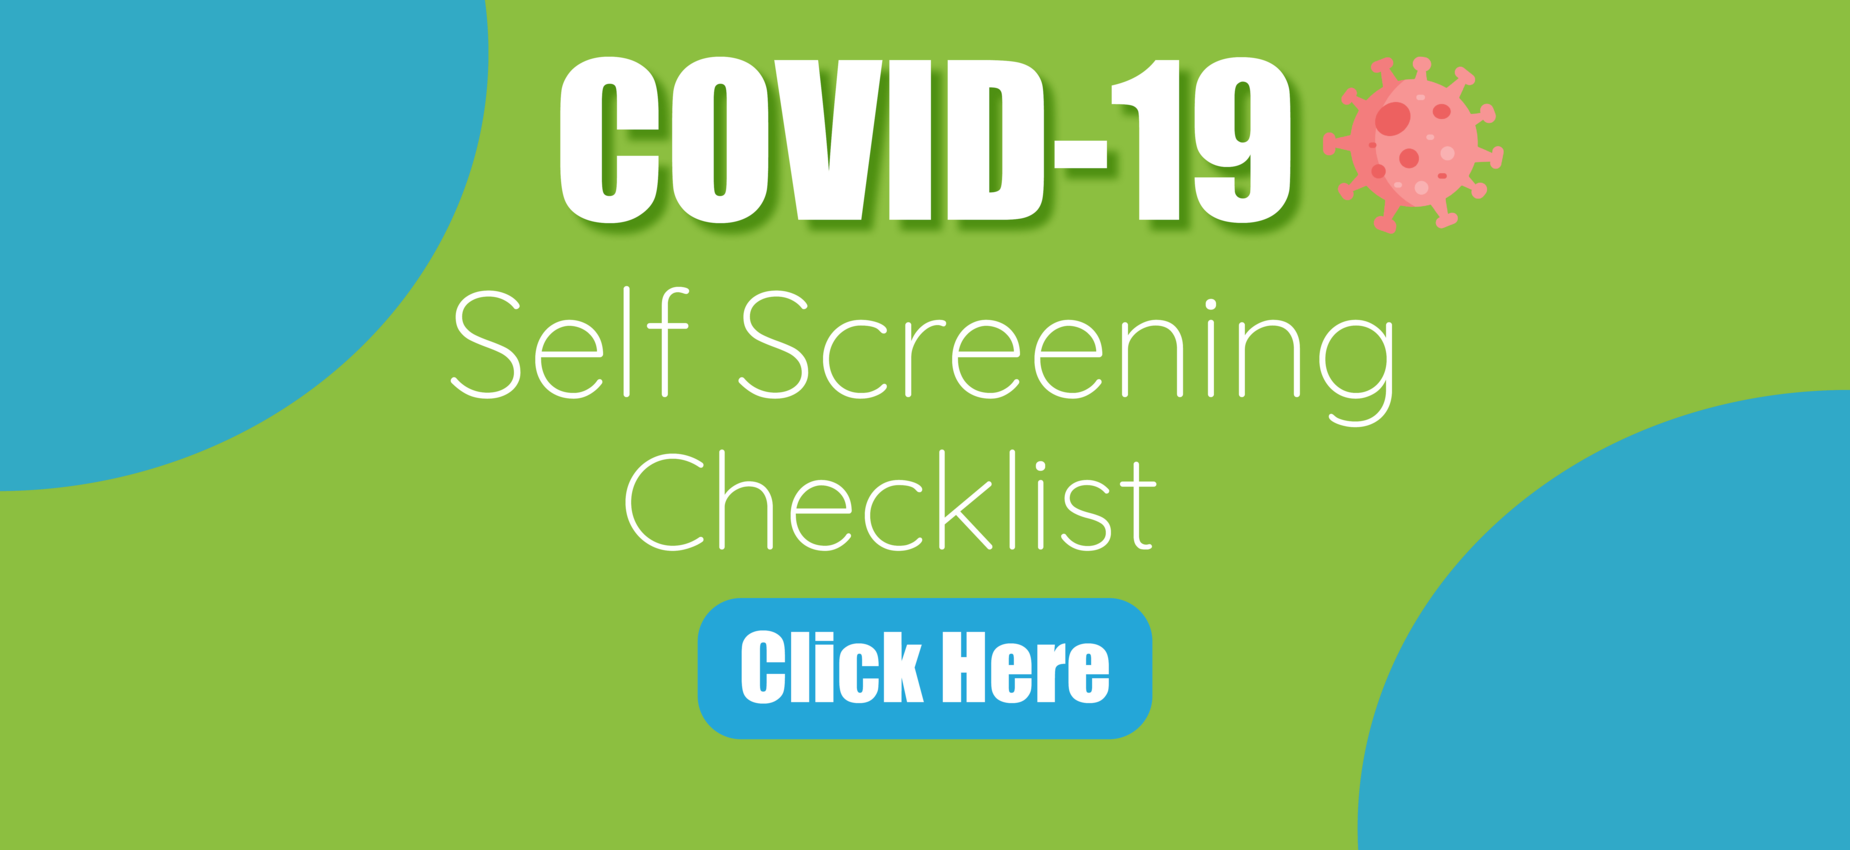 Self Screening Checklist